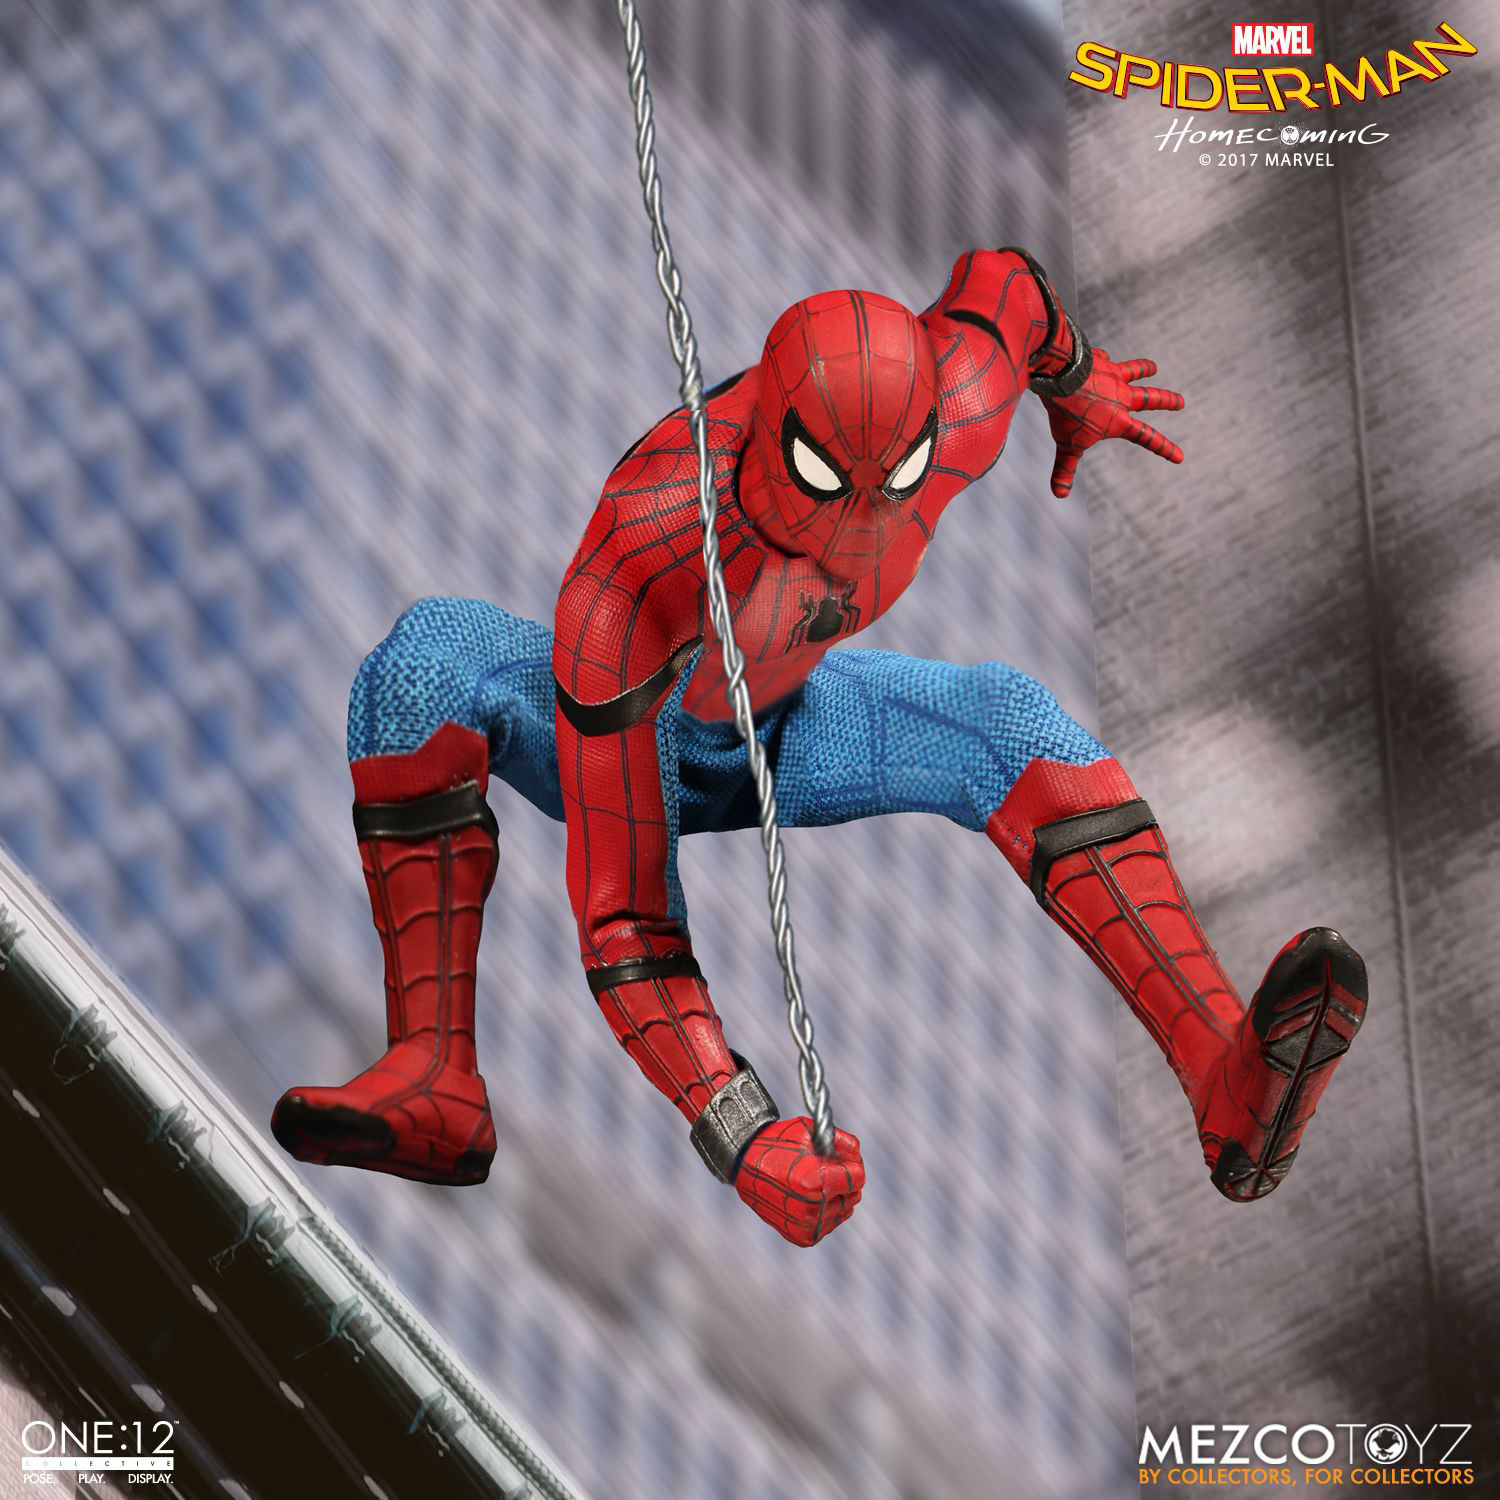 spiderman-homecoming-mezco-one-12-collective-action-figure-8